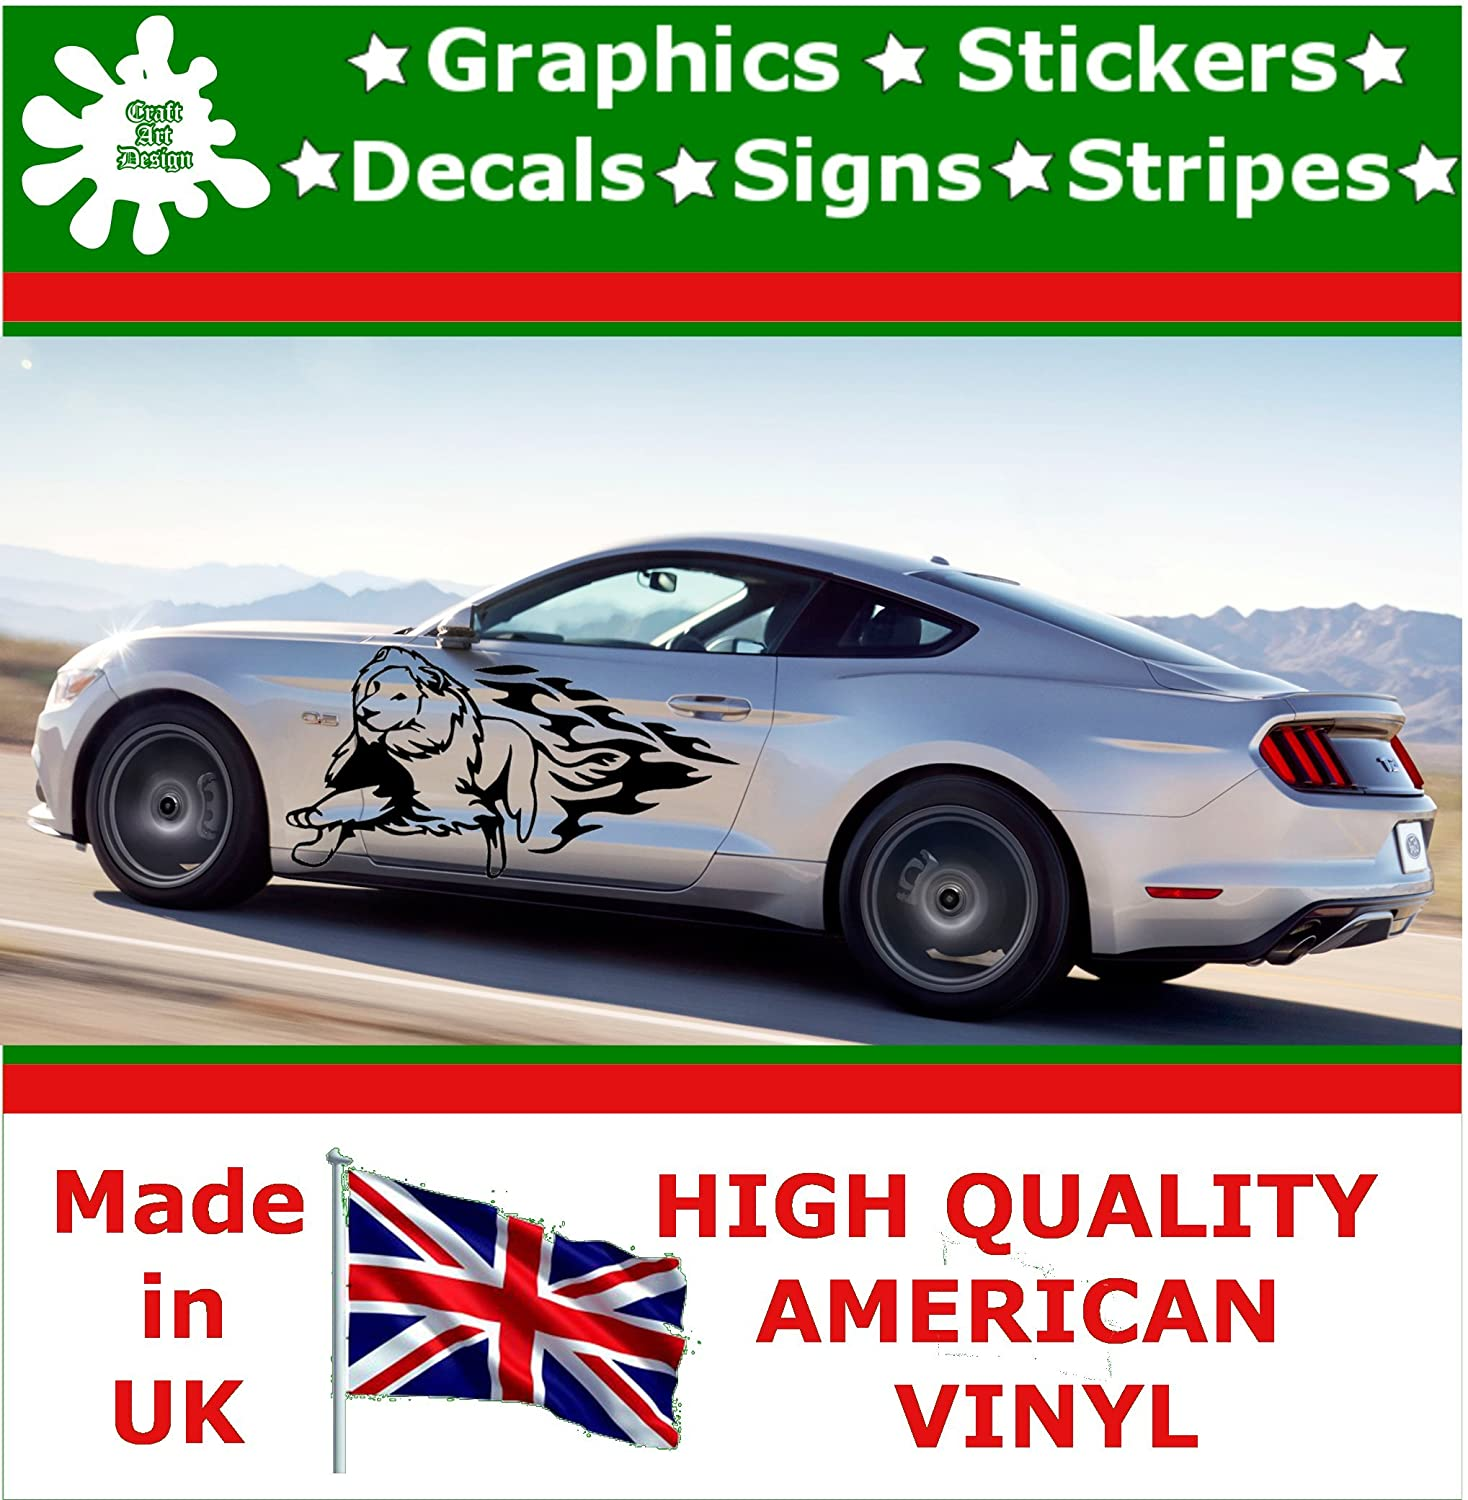 Craft art design lion stickers window stickers self adhesive decal vinyl graphic racing car decal car stickers car vinyl graphic car sticker car accessory